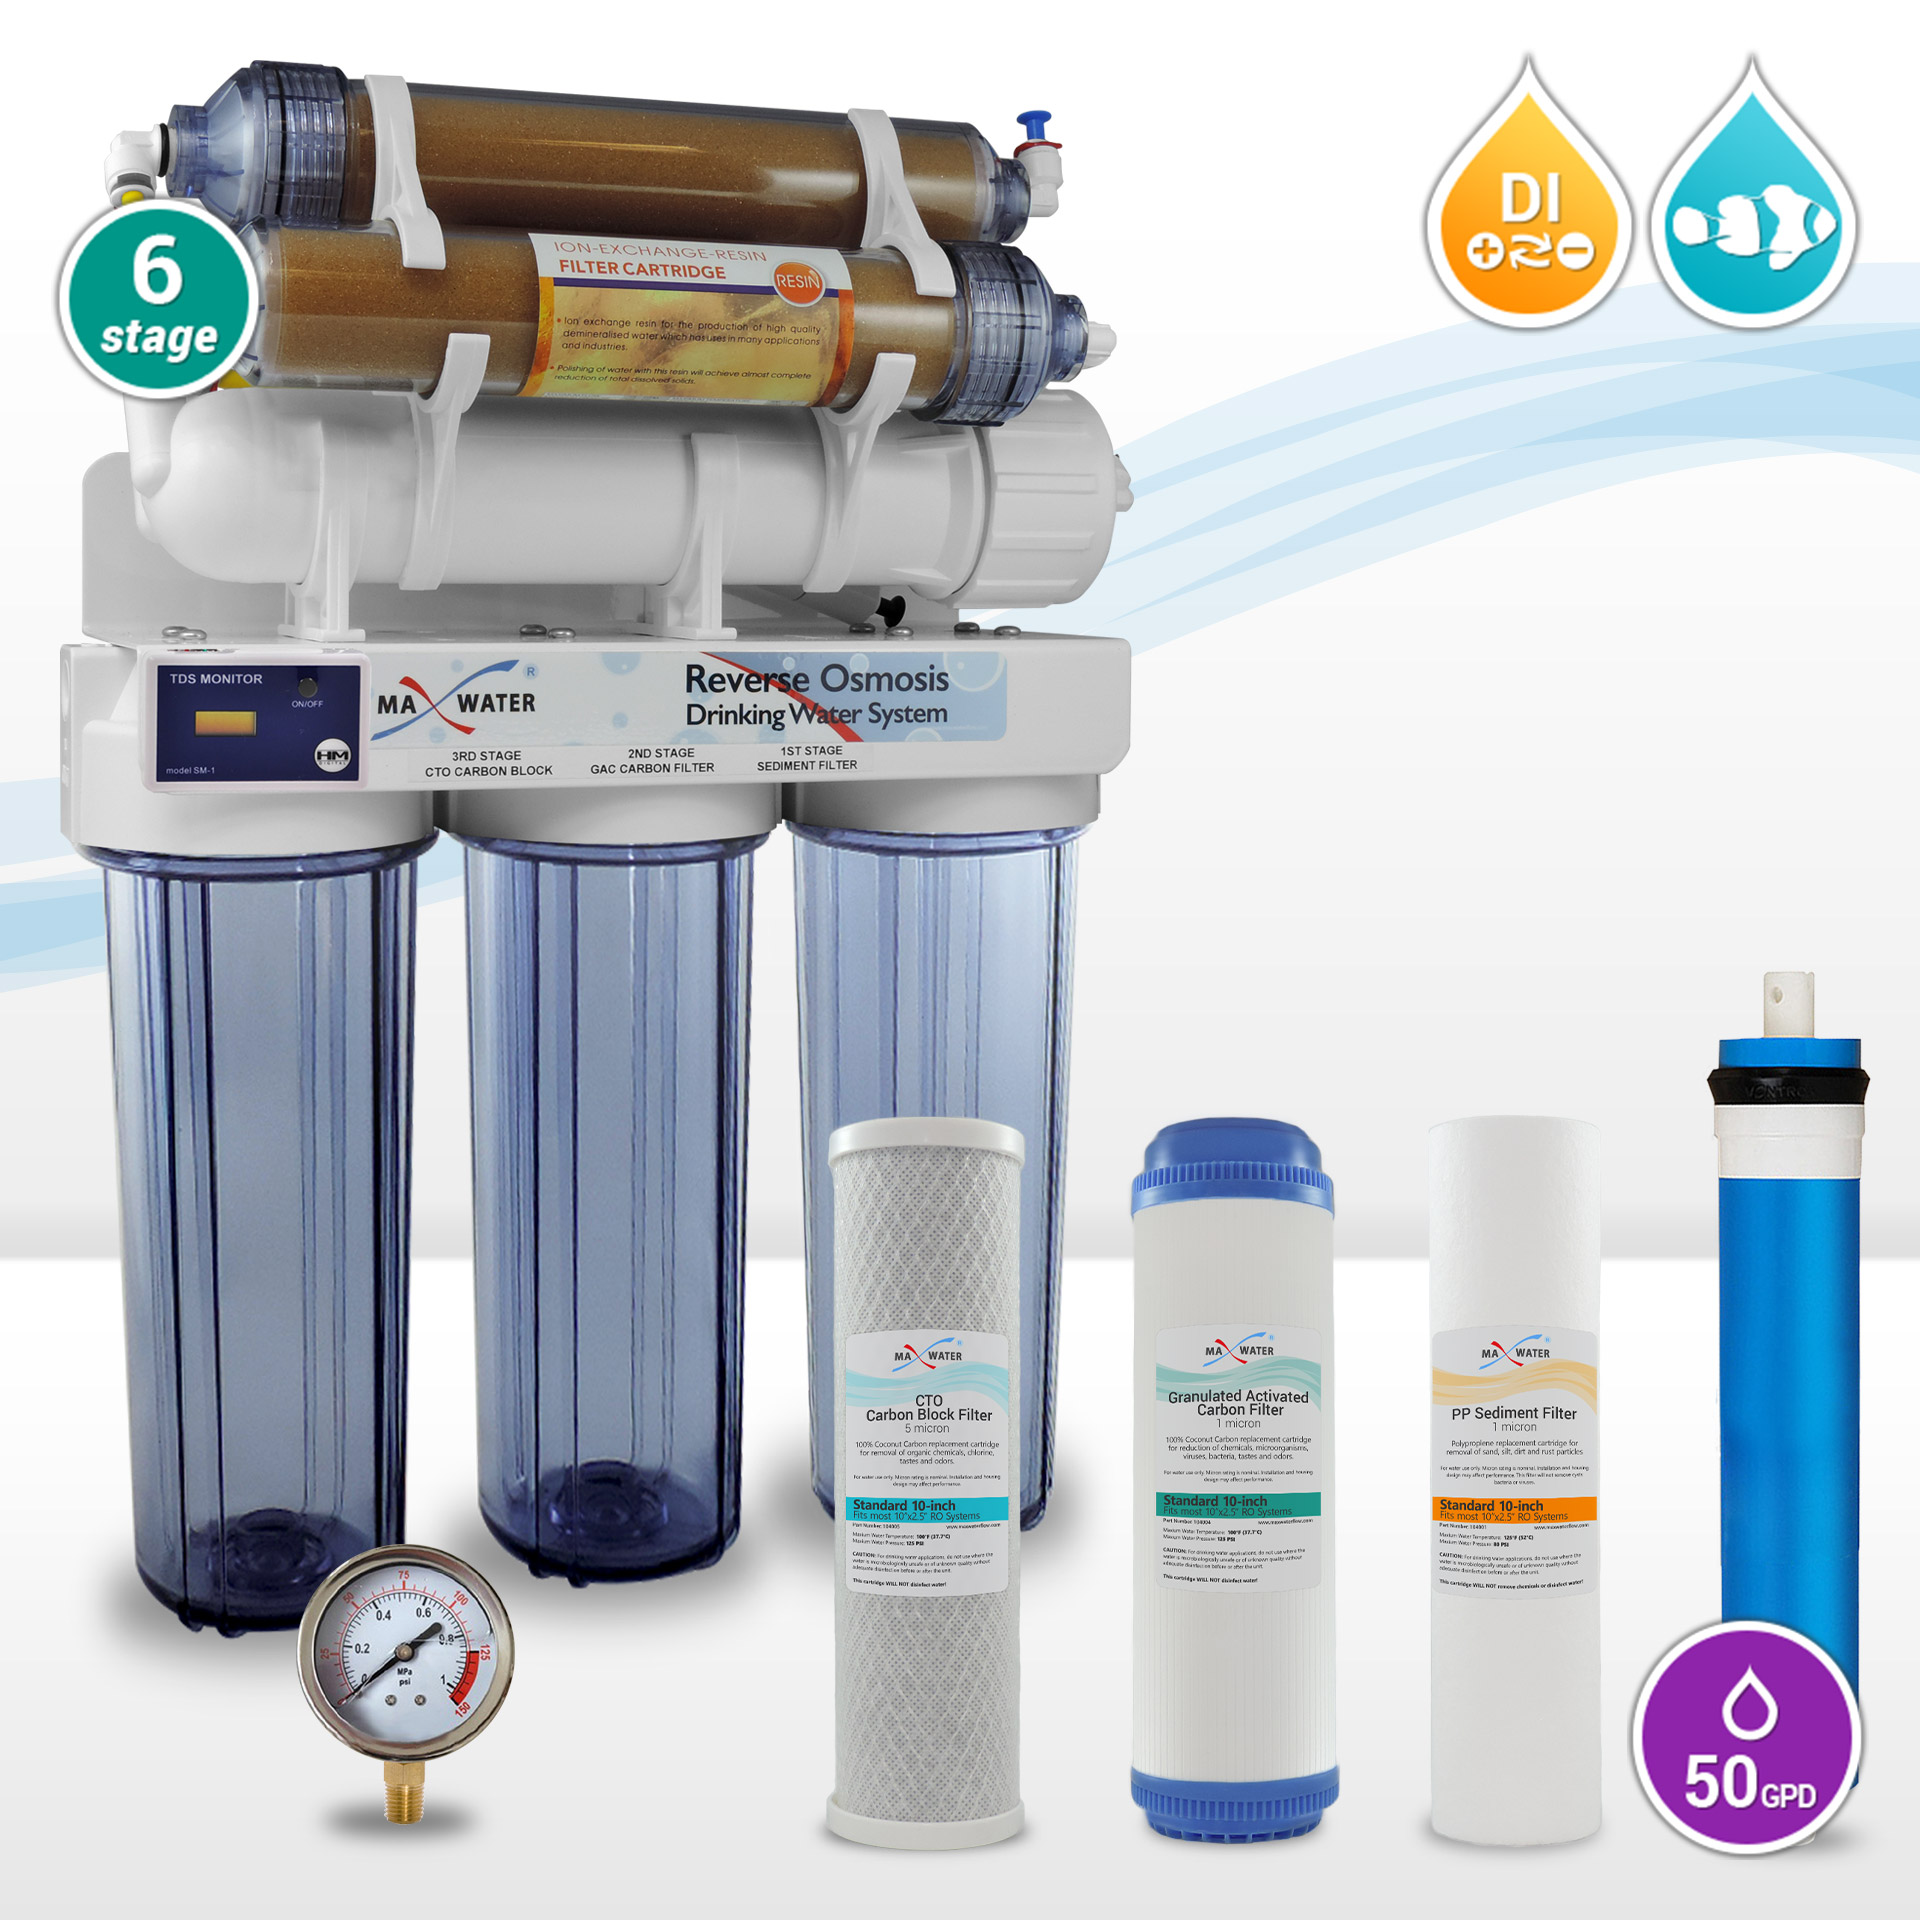 6 Stage Aquarium Reverse Osmosis System Ro Di With Hm